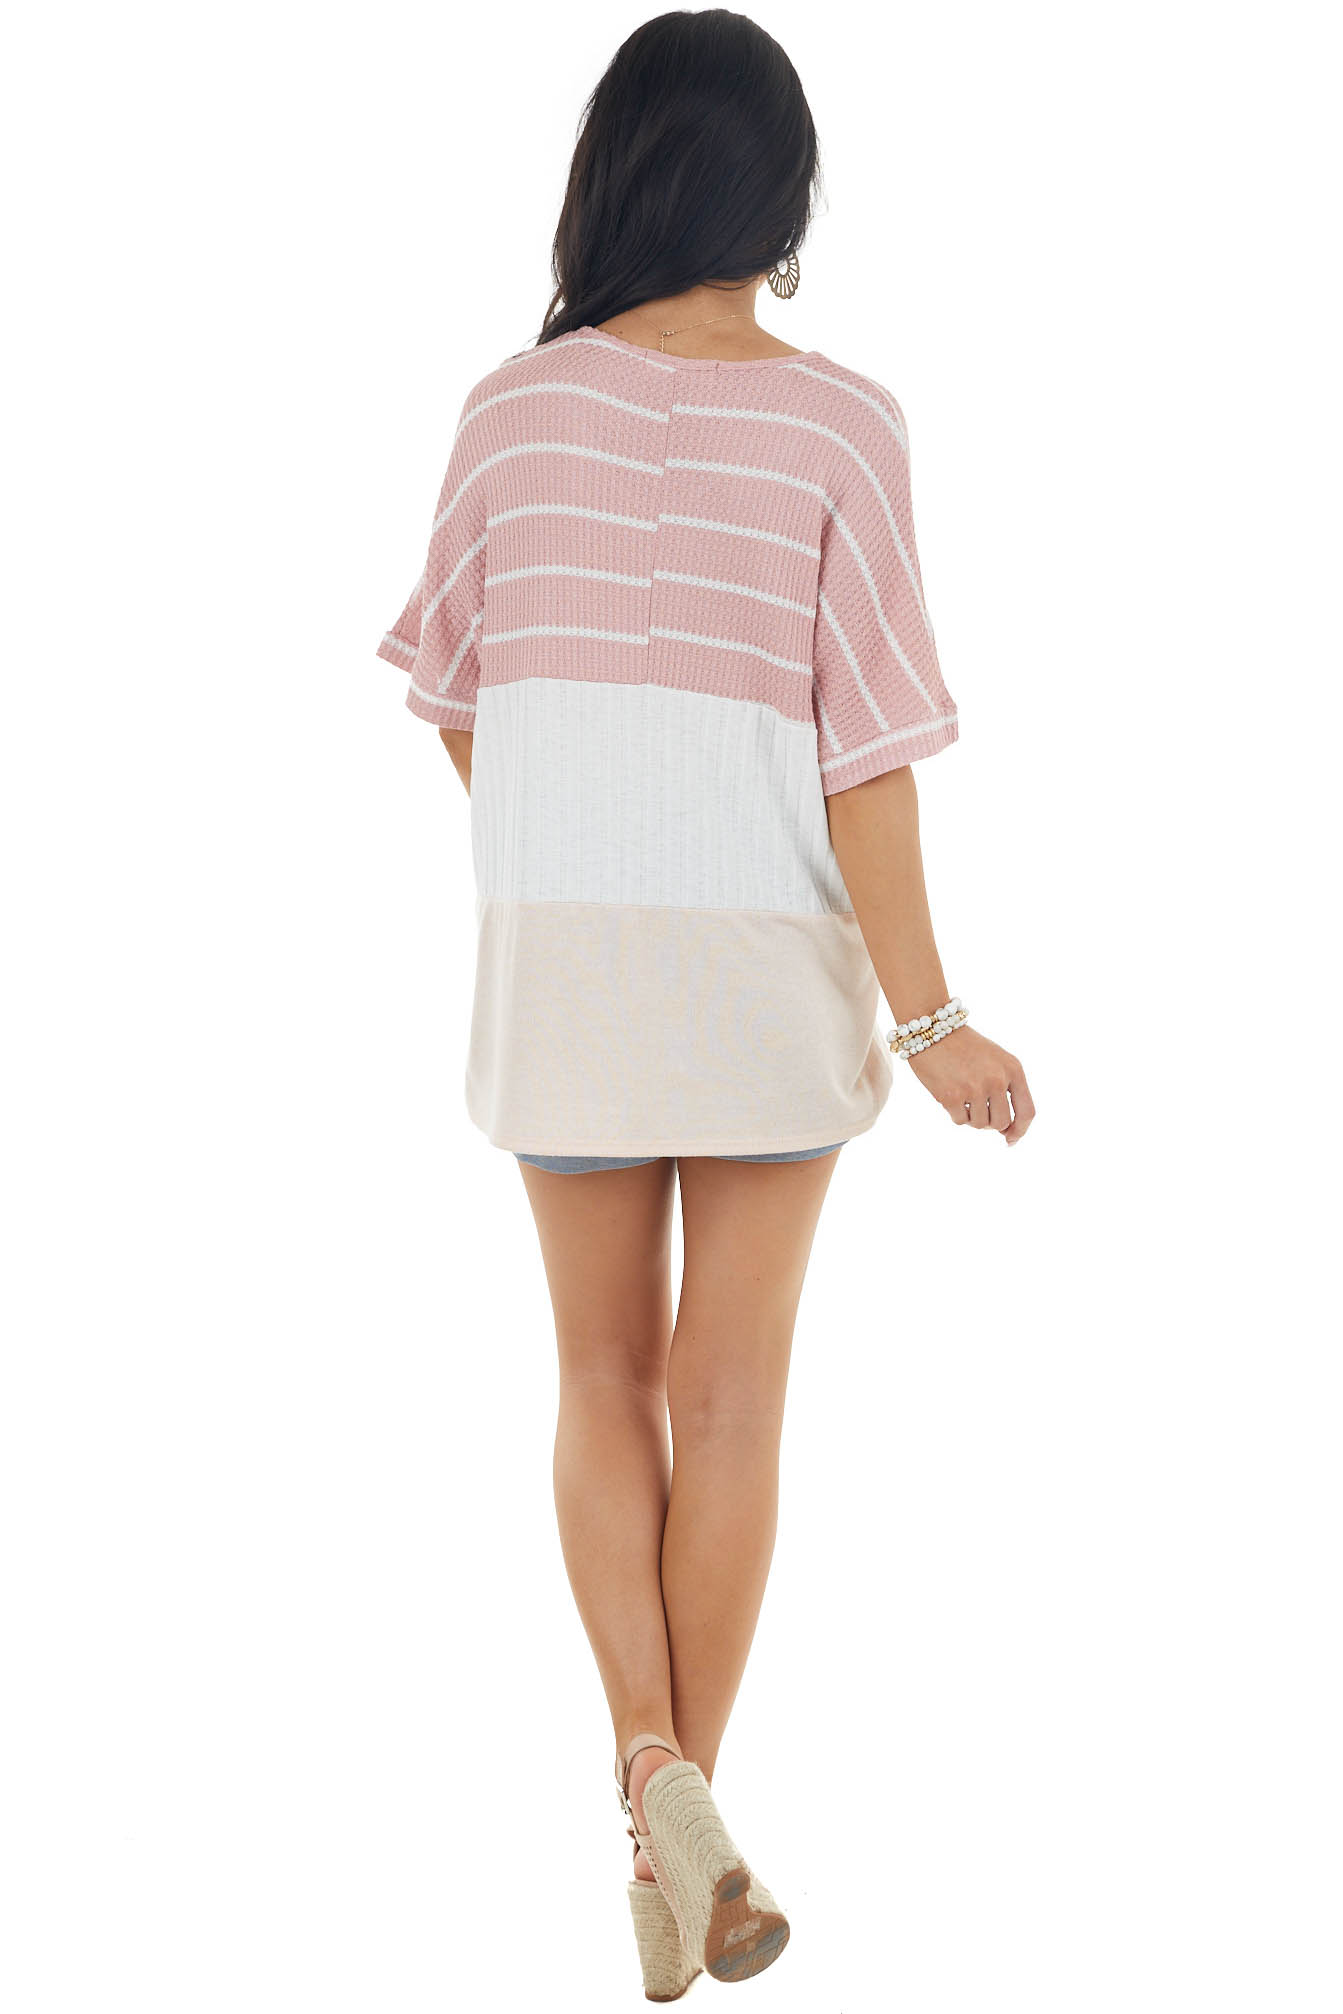 Off White Colorblock Mixed Knit Top with Short Sleeves